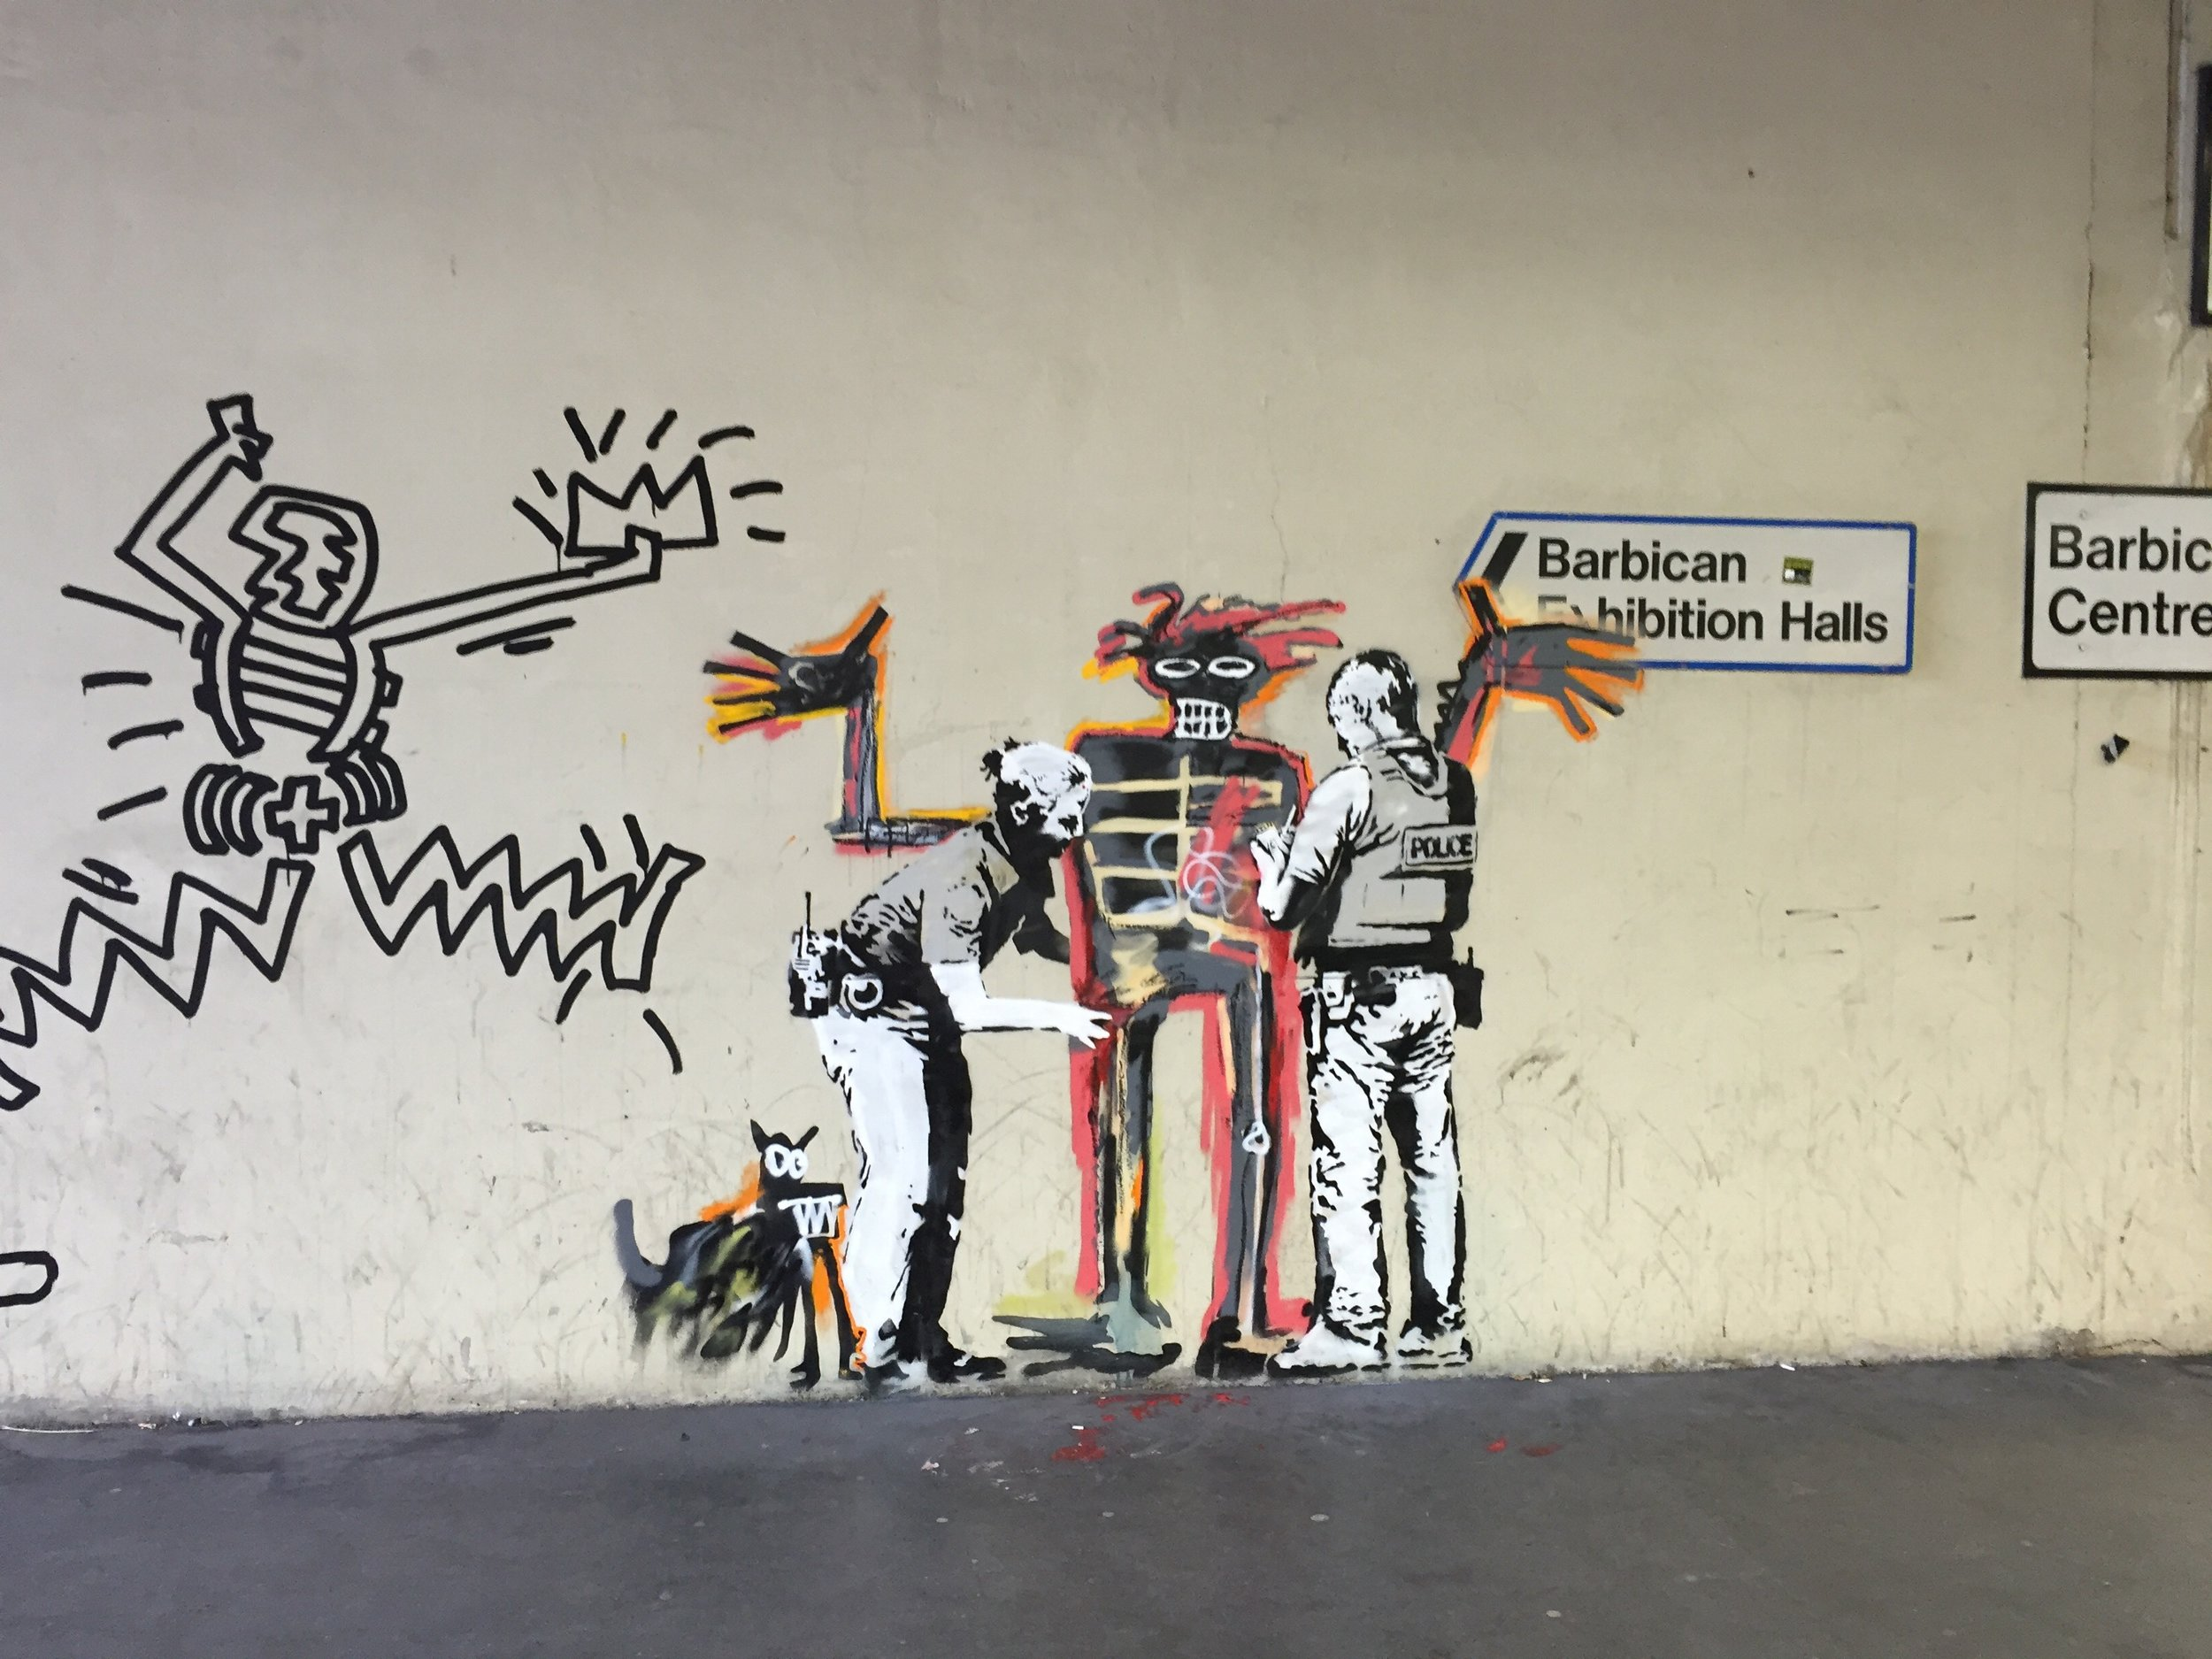 Discussions are being made to preserve the new murals to avoid further defacing.